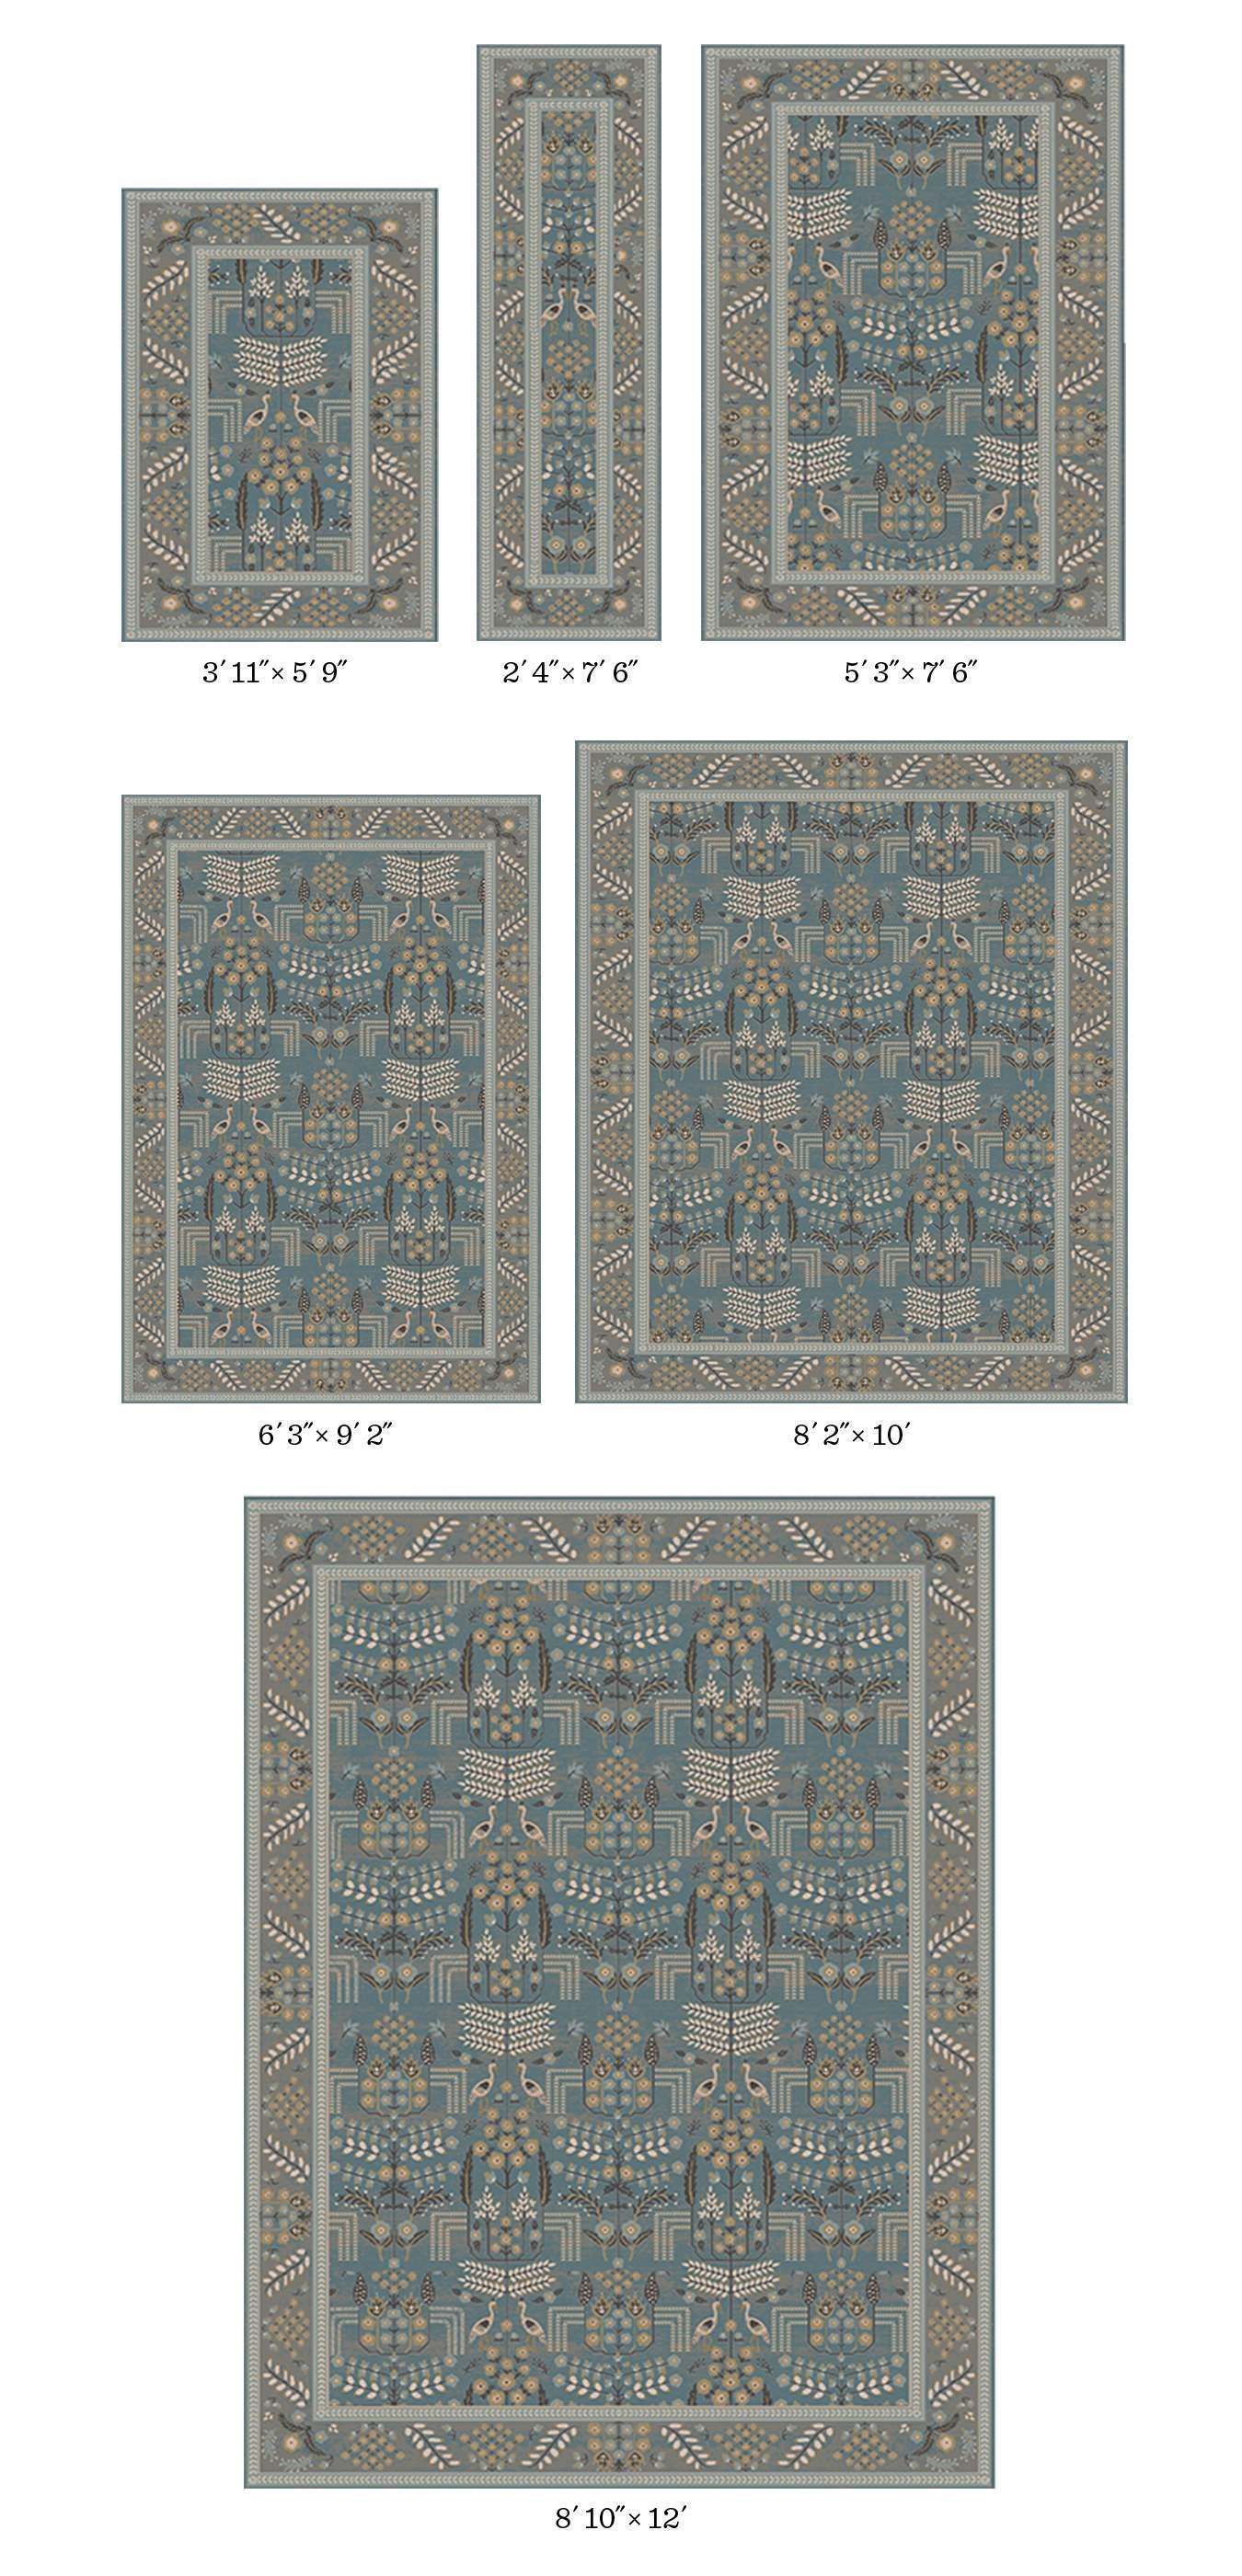 50 Cool 10x12 Rugs For Living Room In 2020 Geometric Carpet Rugs On Carpet Hotel Carpet